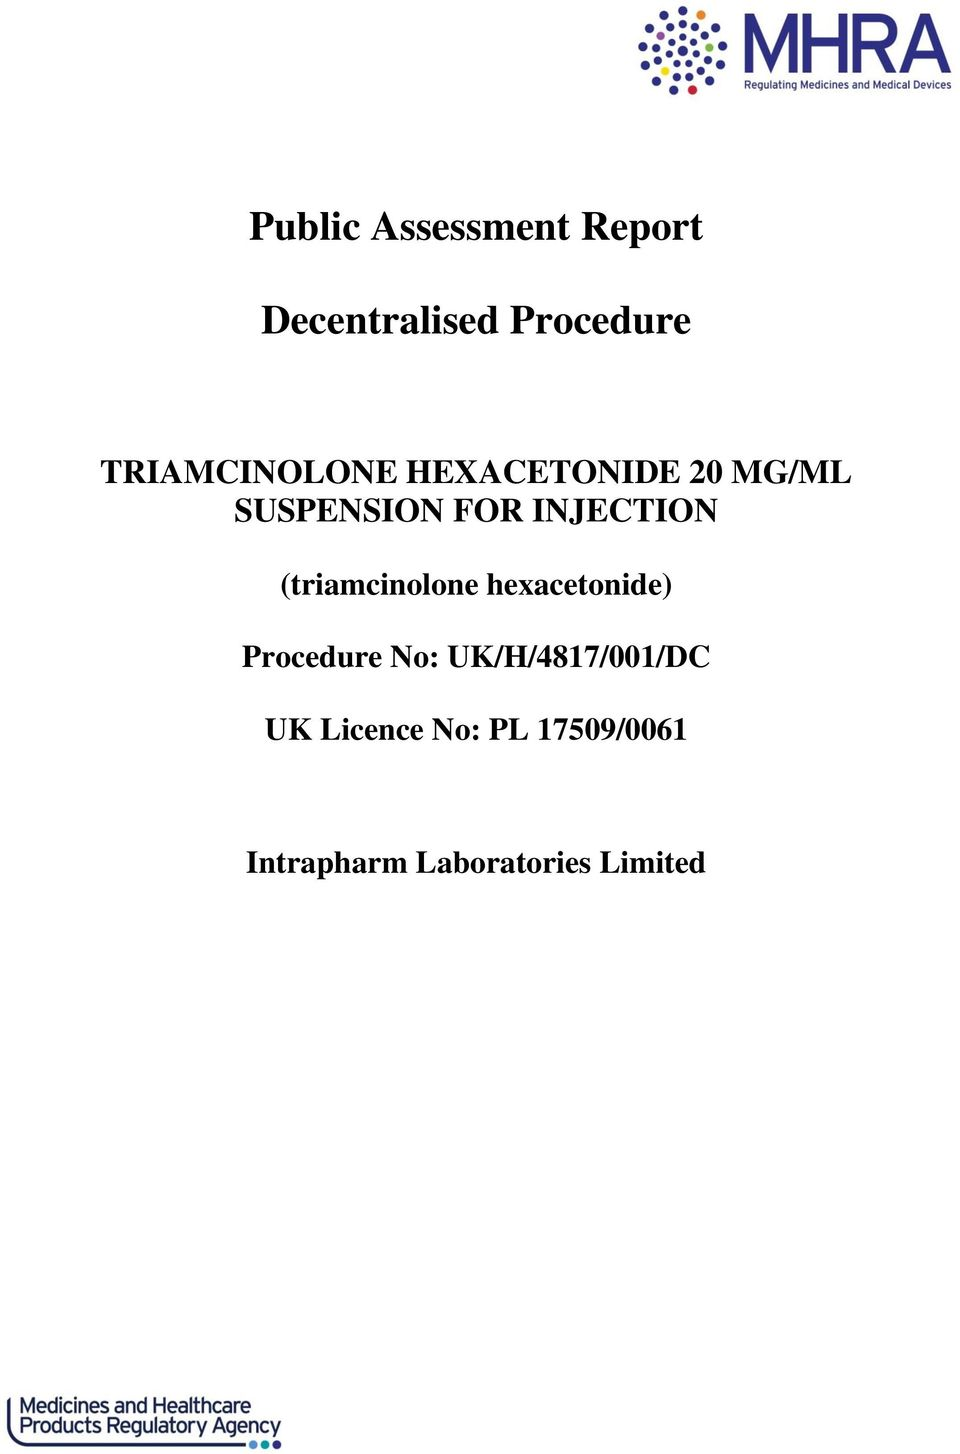 INJECTION (triamcinolone hexacetonide) Procedure No: